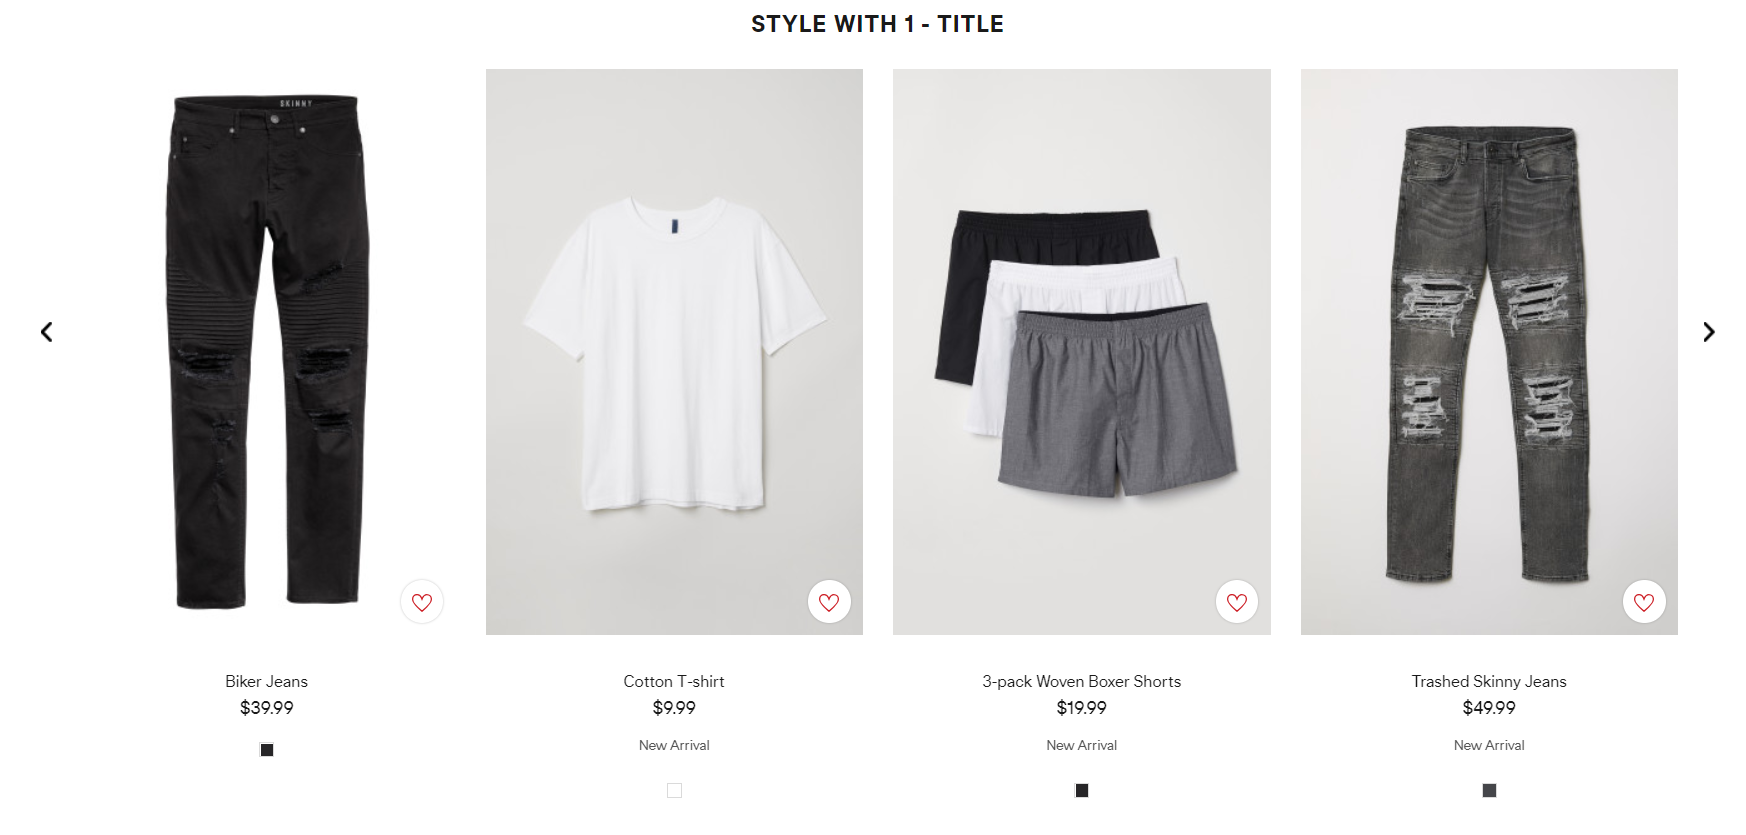 H&M uses a scrolling list of recommended product pairings.